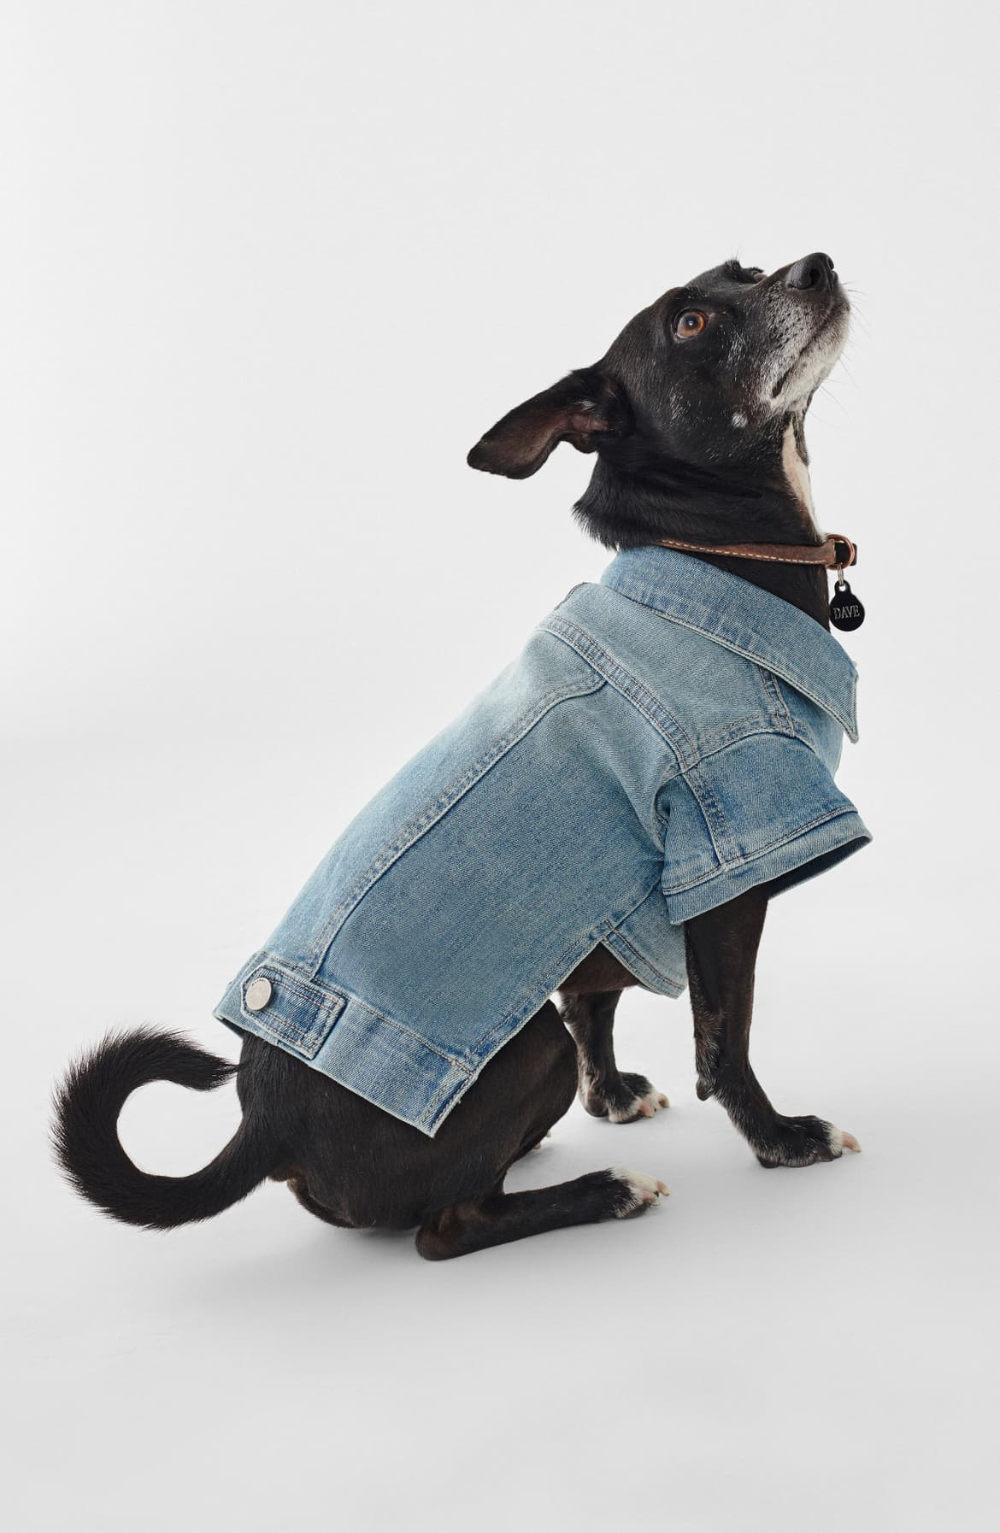 Pin On Dogs With Style [ 1533 x 1000 Pixel ]